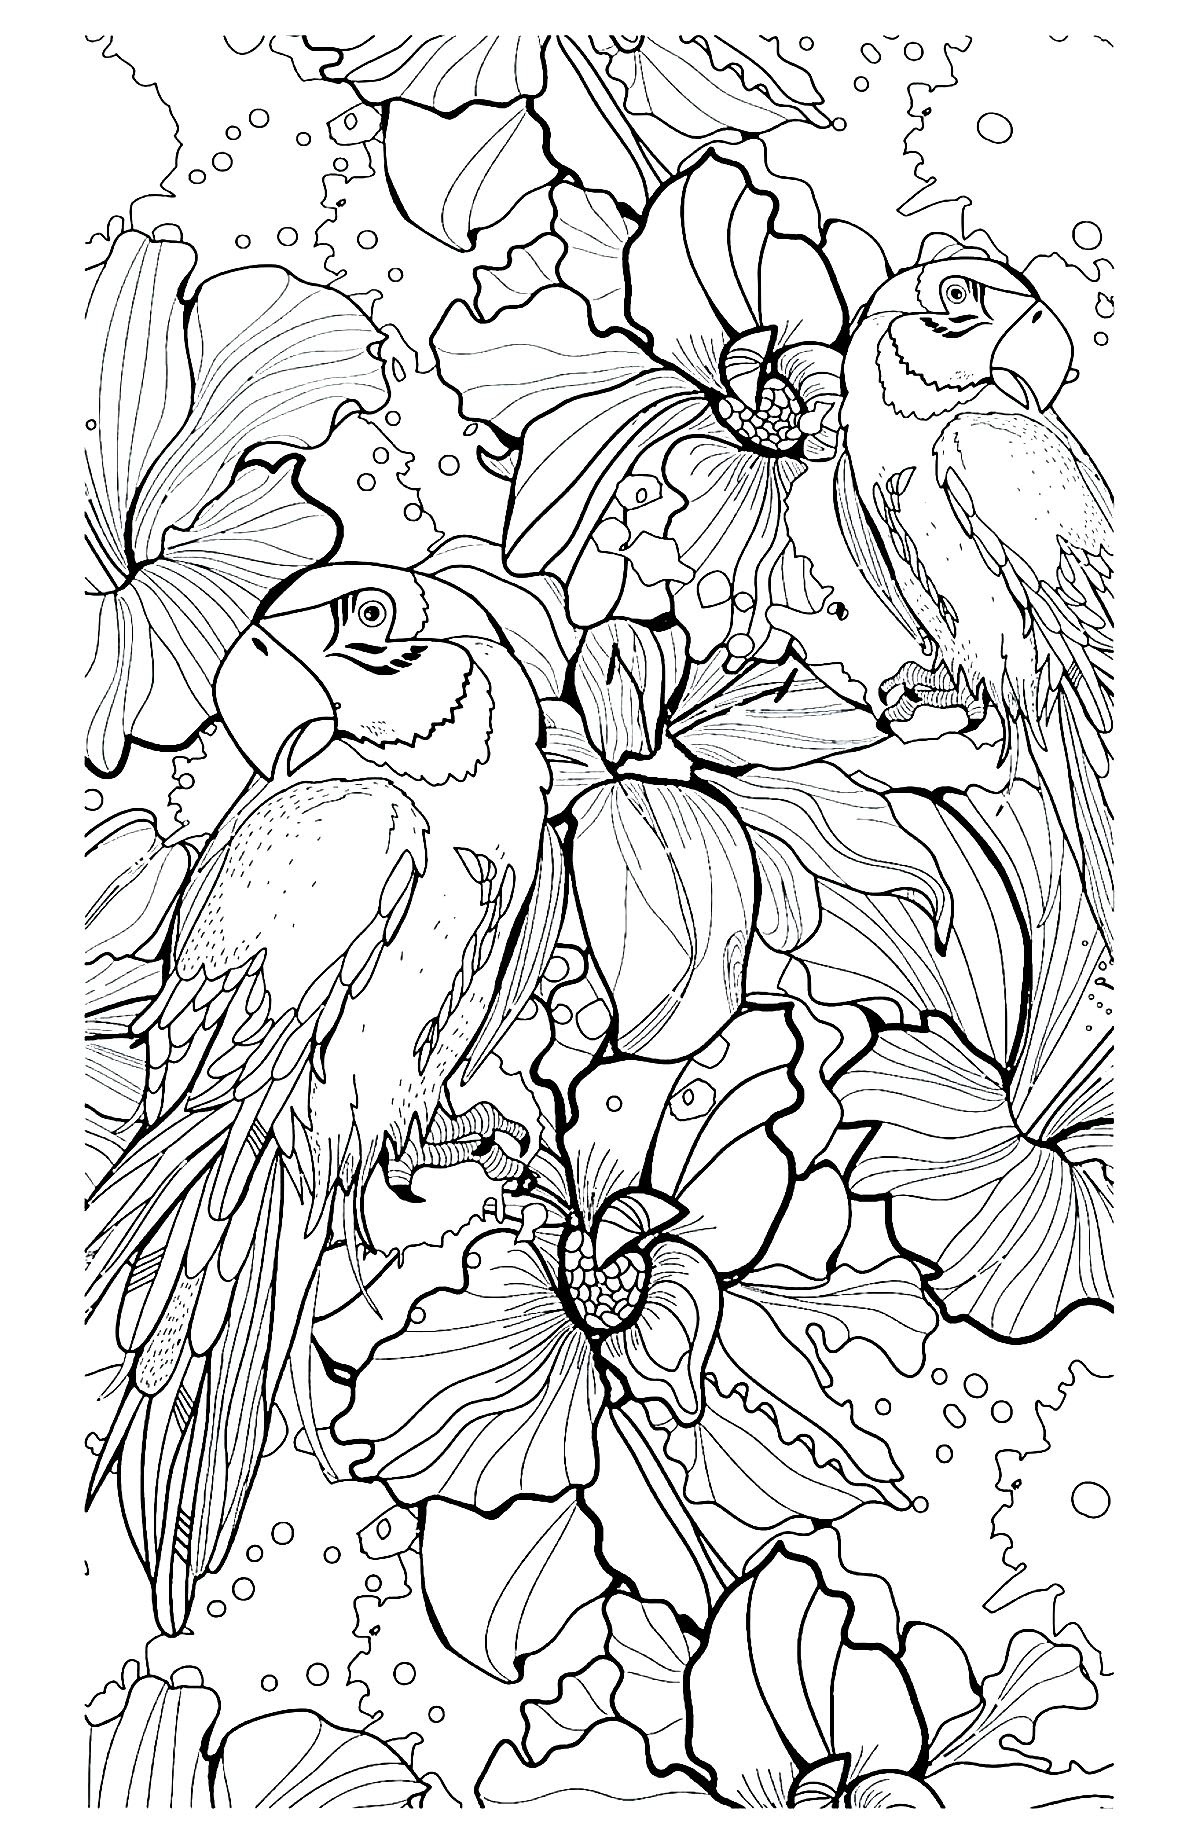 Parrot difficult | Animals - Coloring pages for adults ...